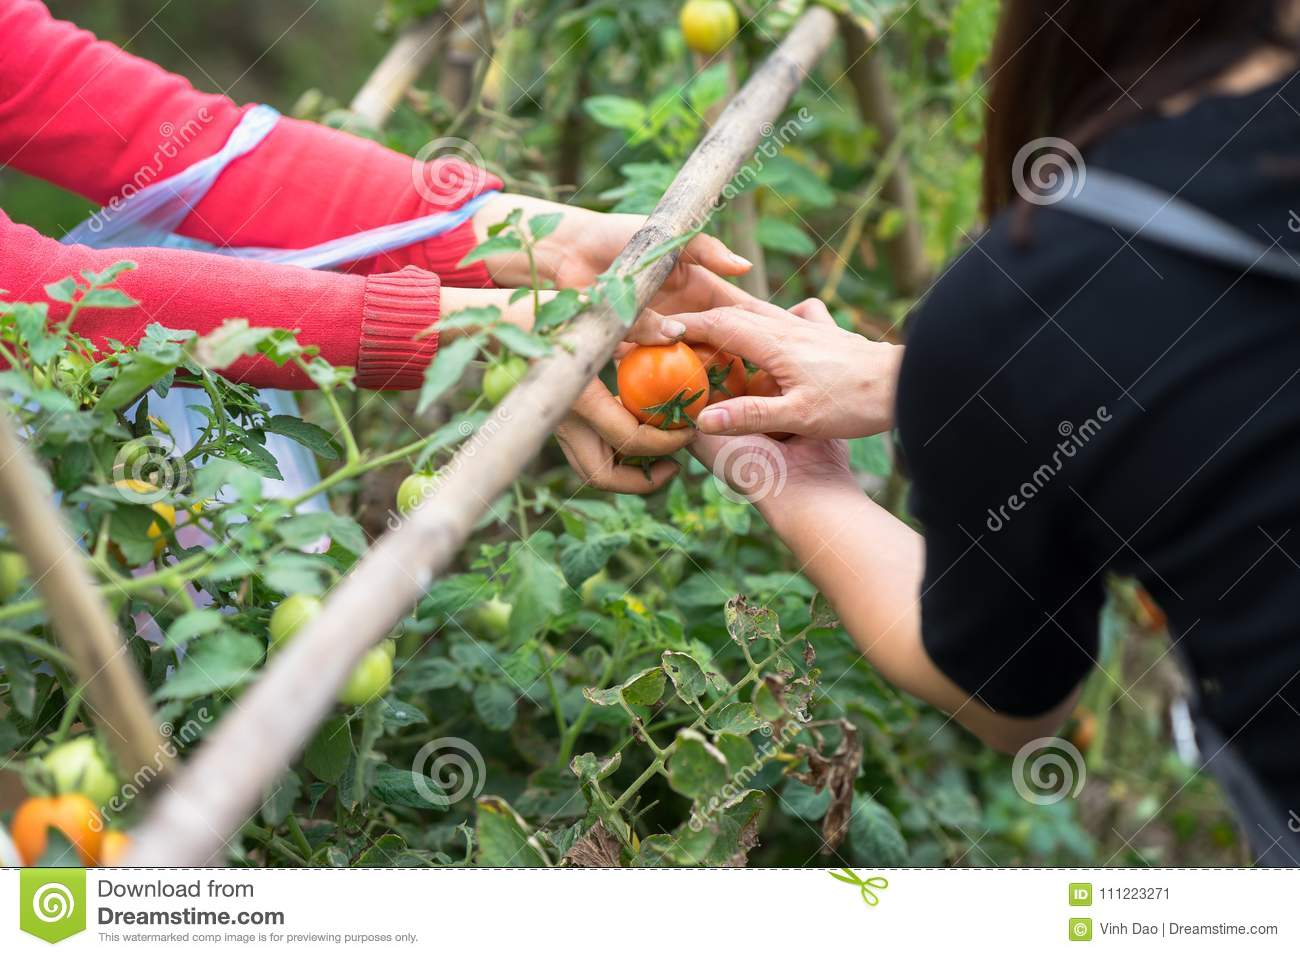 Woman hands hold fresh tomatoes giving and other hands receiving on cultivated field